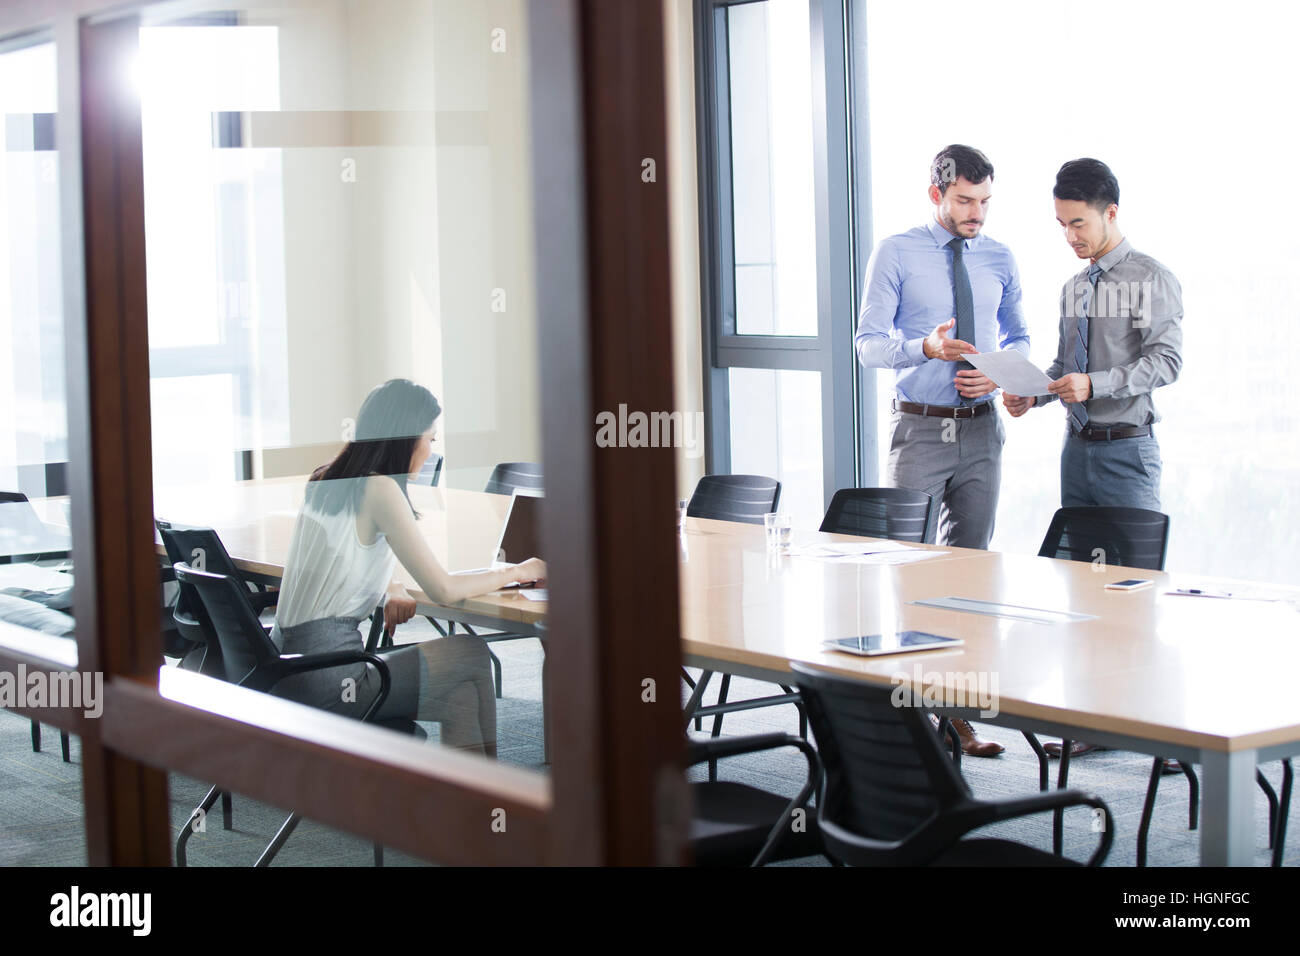 Business people talking in meeting room - Stock Image